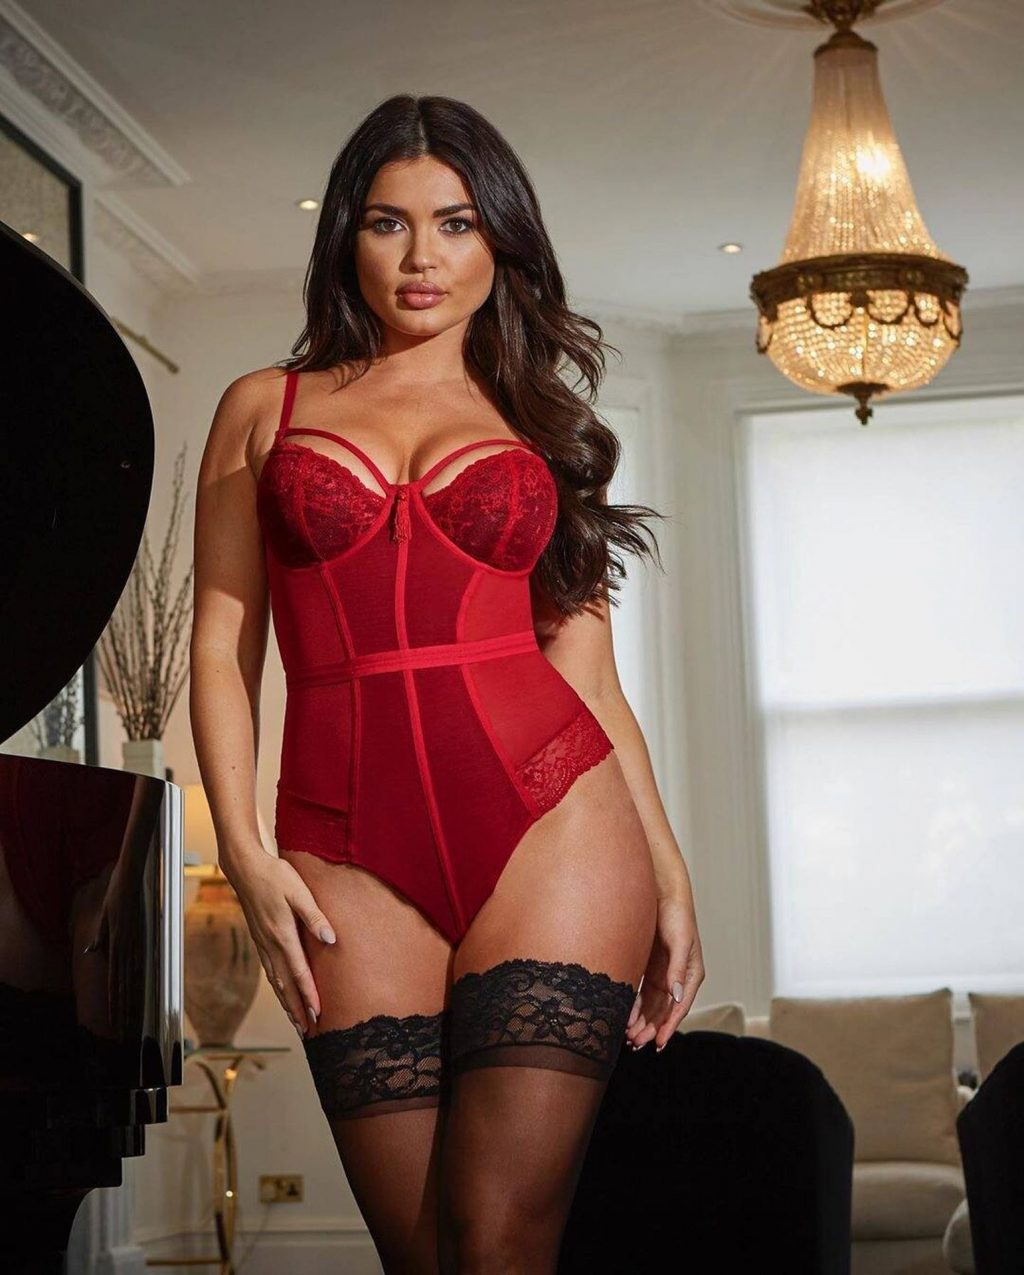 India Reynolds Presents Pour Moi Lingerie Collection (19 Photos)